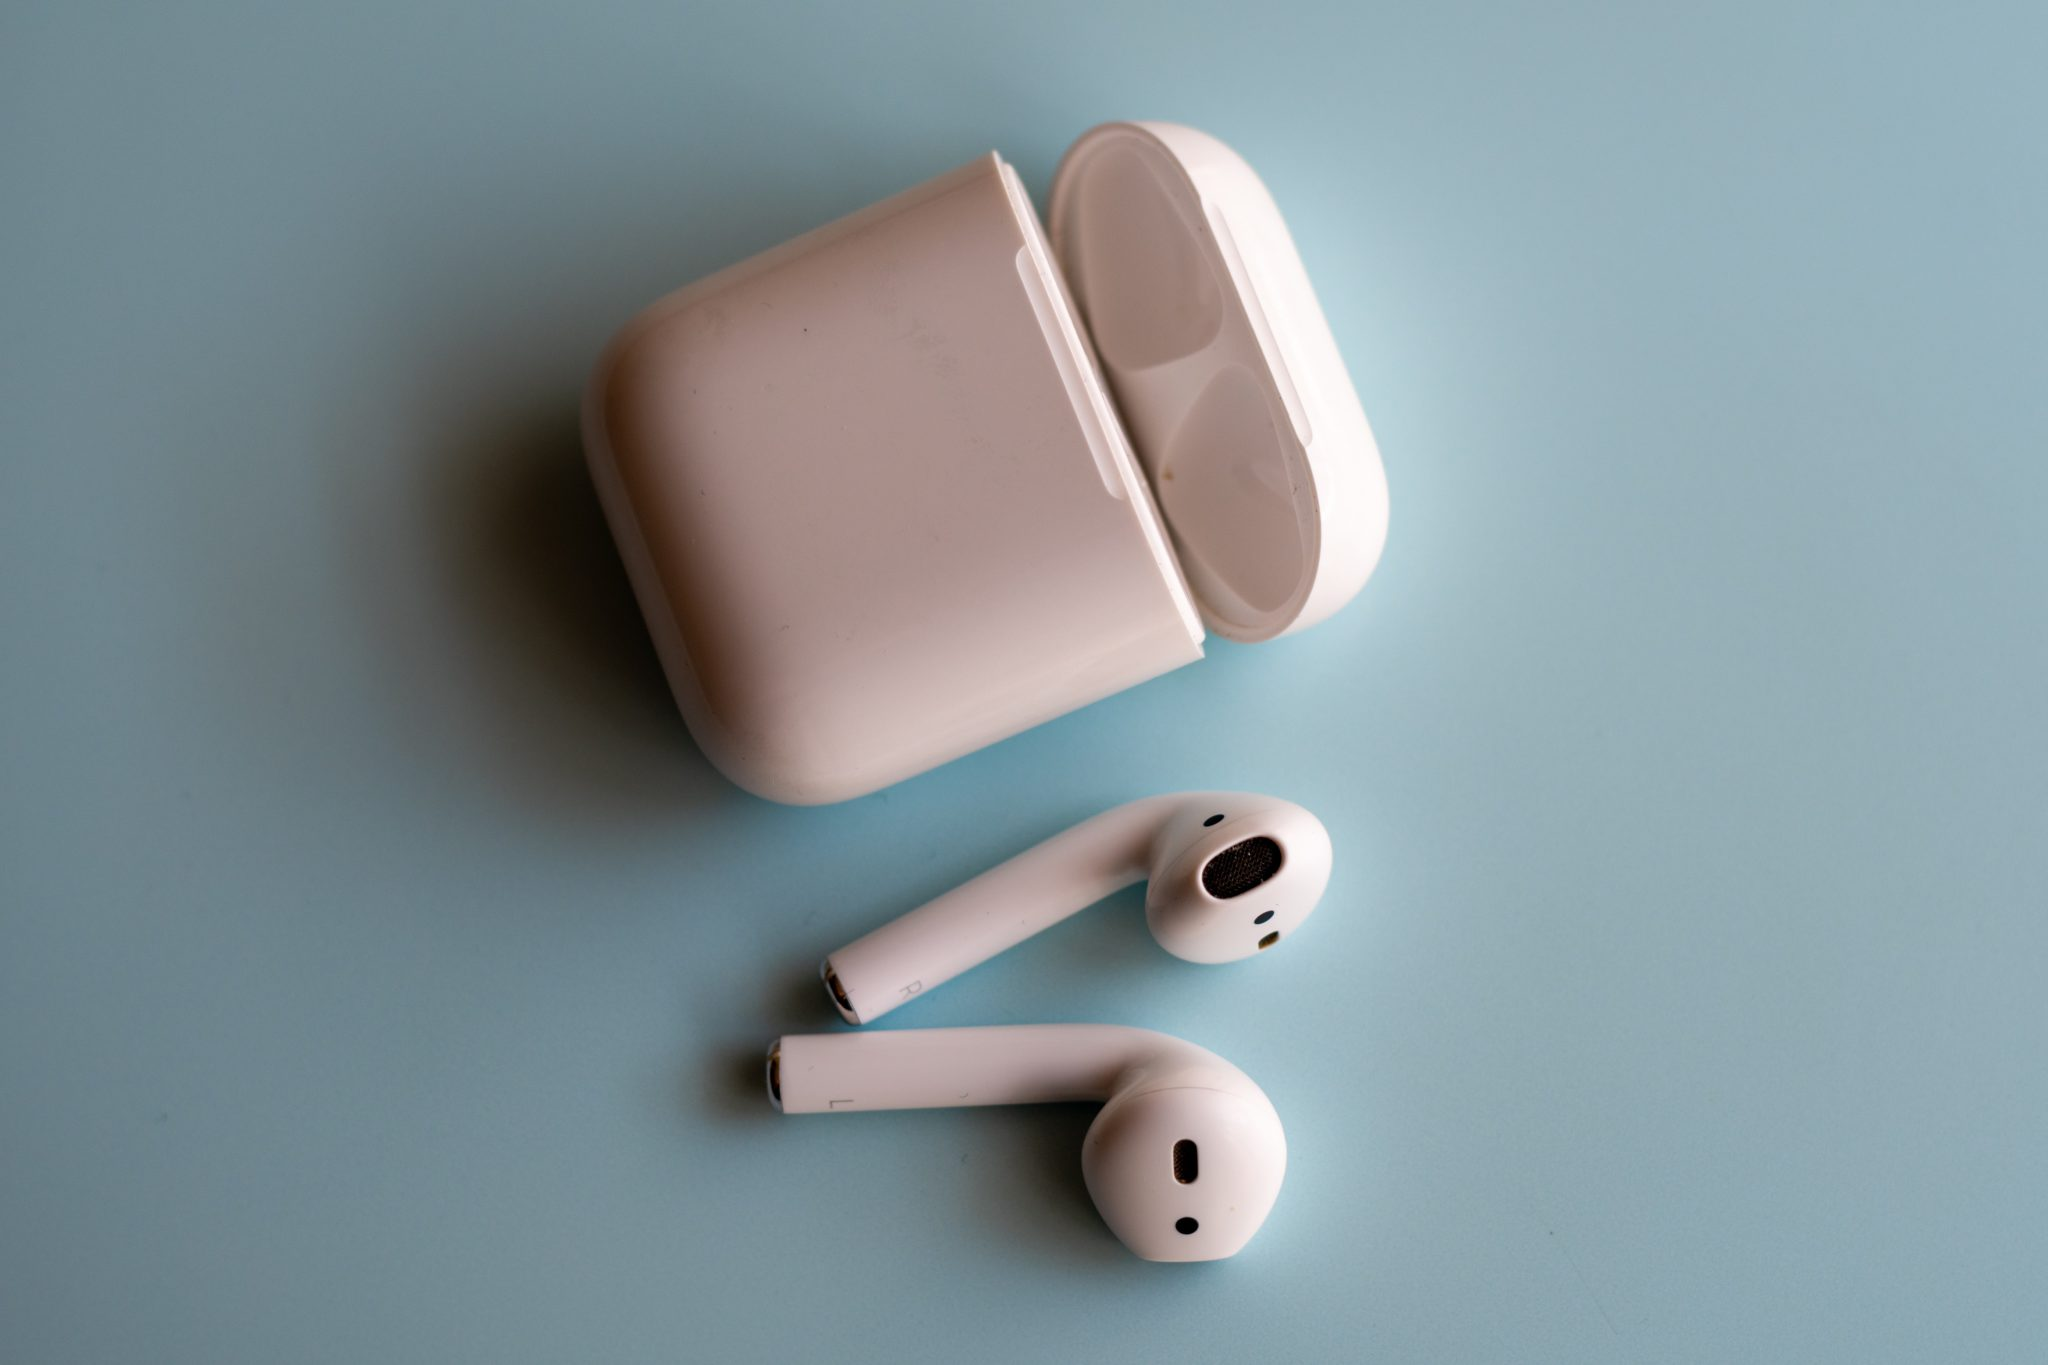 image-airpods-for-android